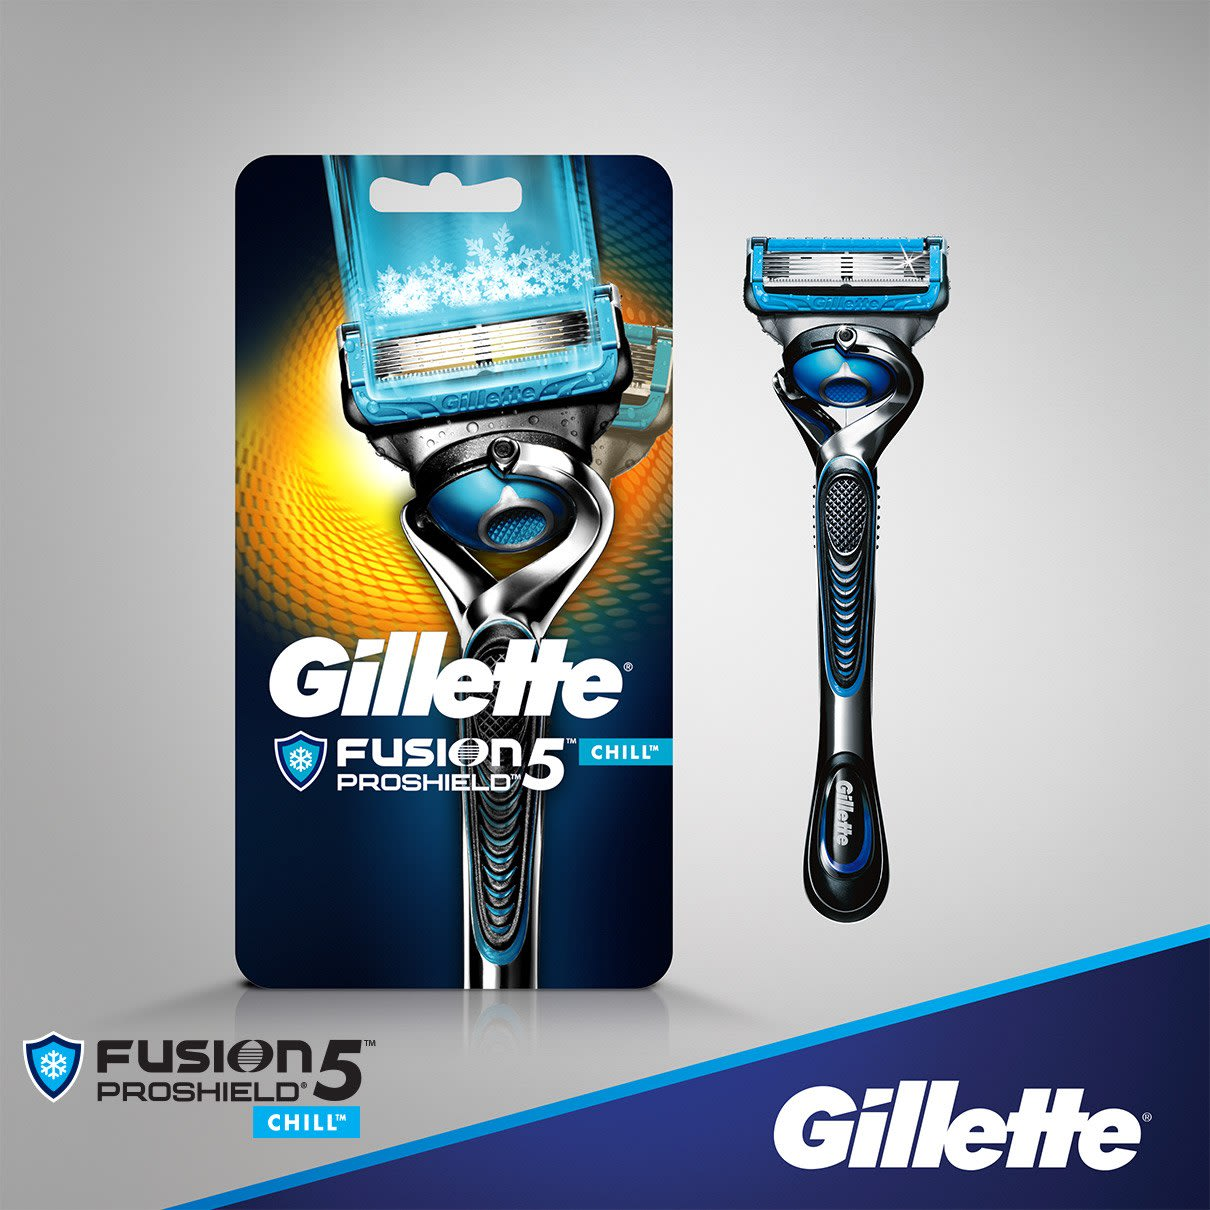 Gillette® Fusion5™ ProShield Chill Razor with Flexball™ Technology